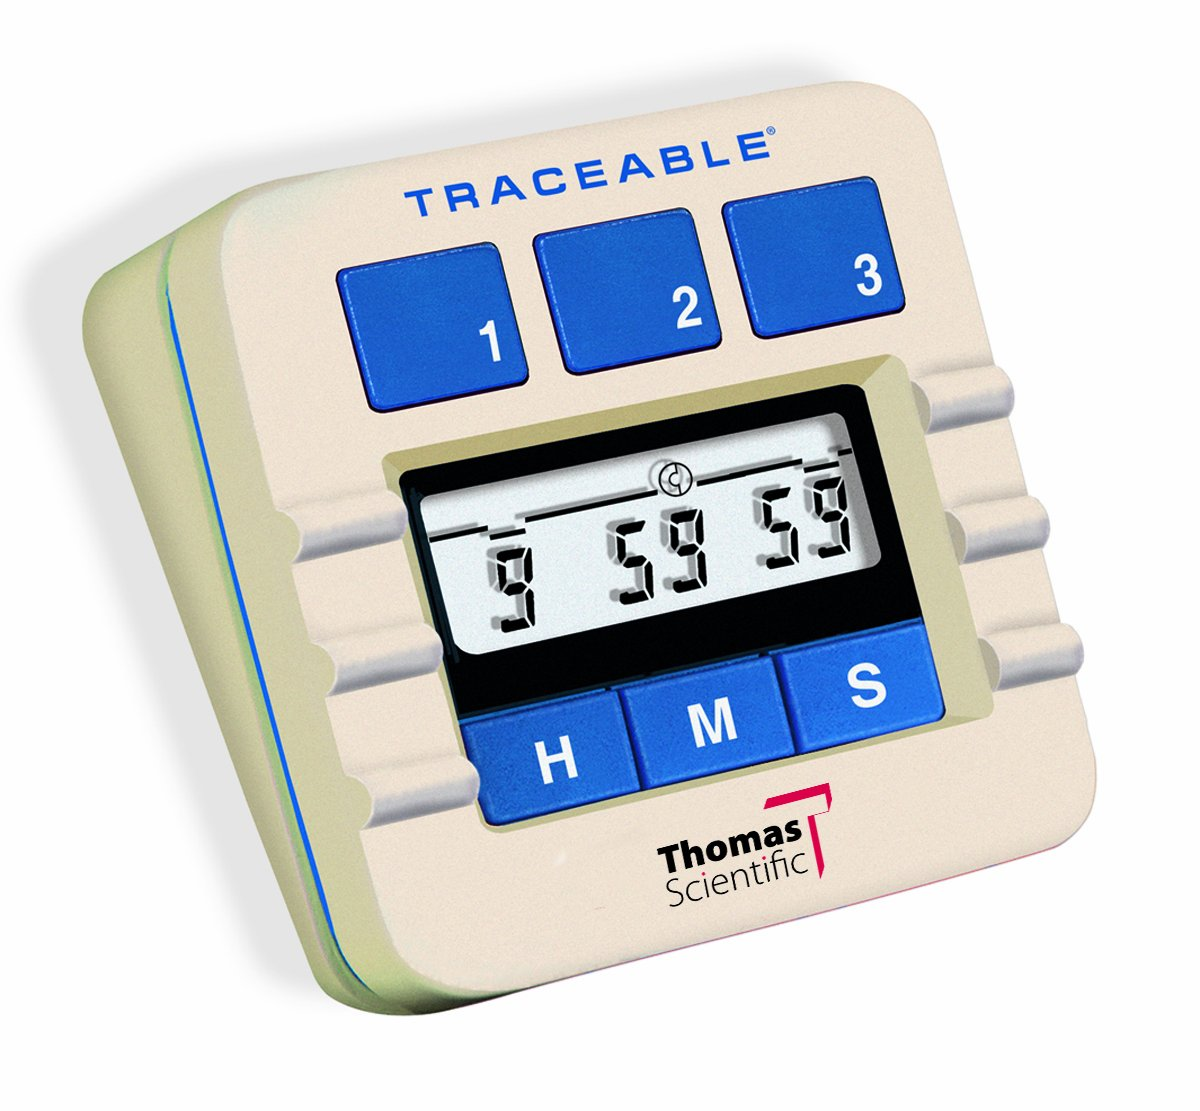 Thomas 5002 Original Traceable Lab Timer, 0.01 Percent Accuracy, 3'' Width x 3'' Height x 1-3/8'' Depth